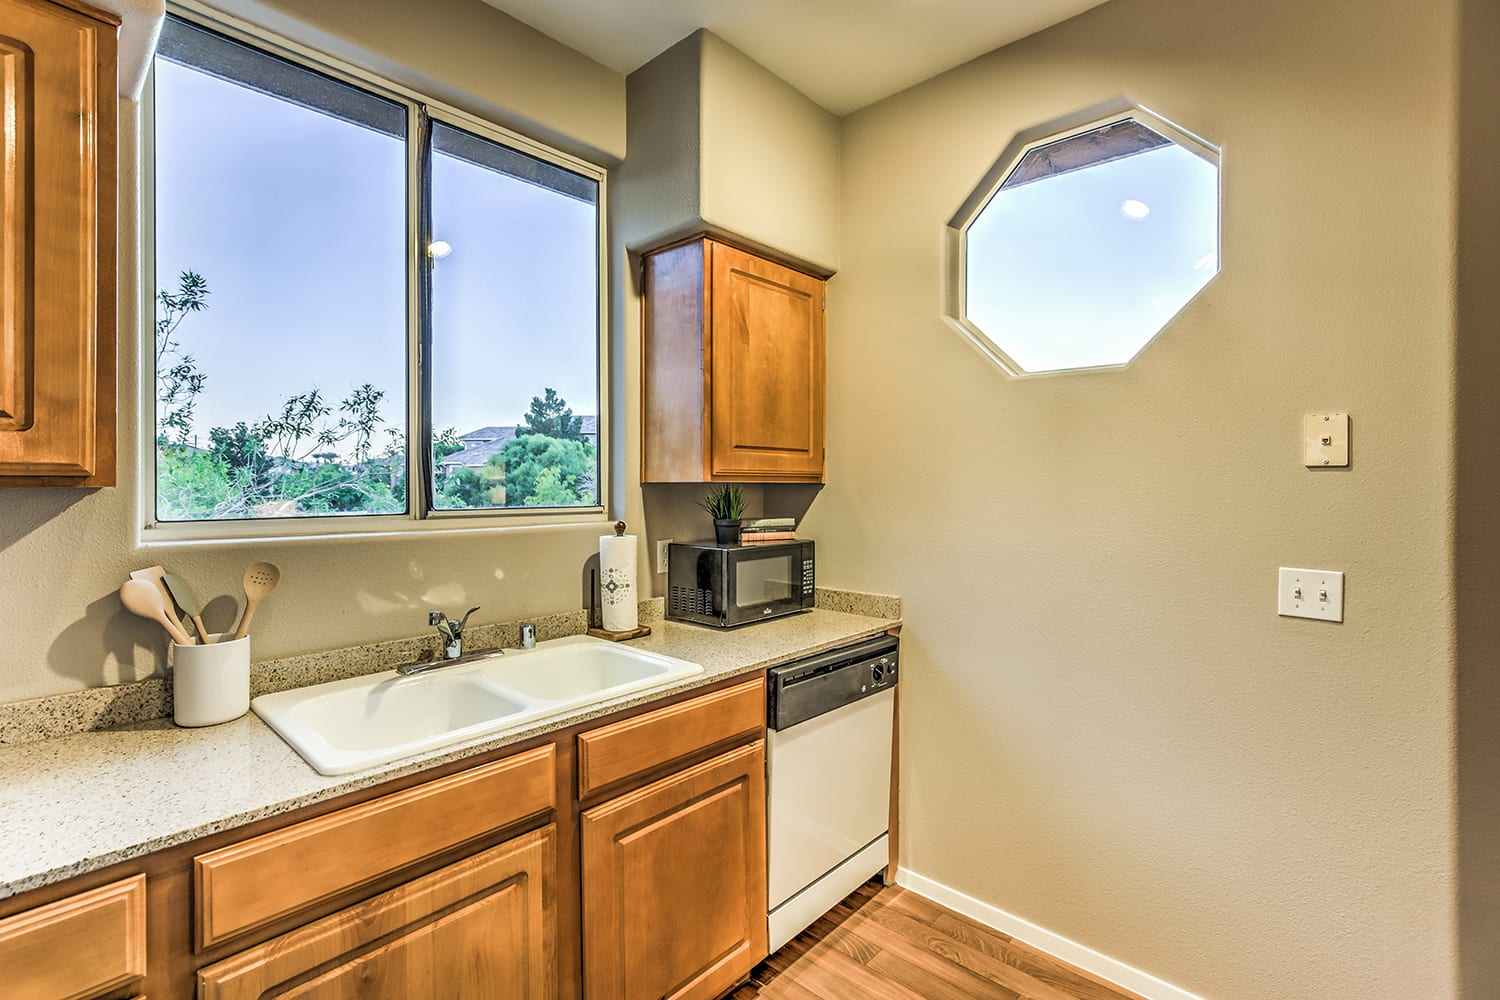 A warm kitchen with wooden cabinets, smooth countertops, and an interesting octagonal window.